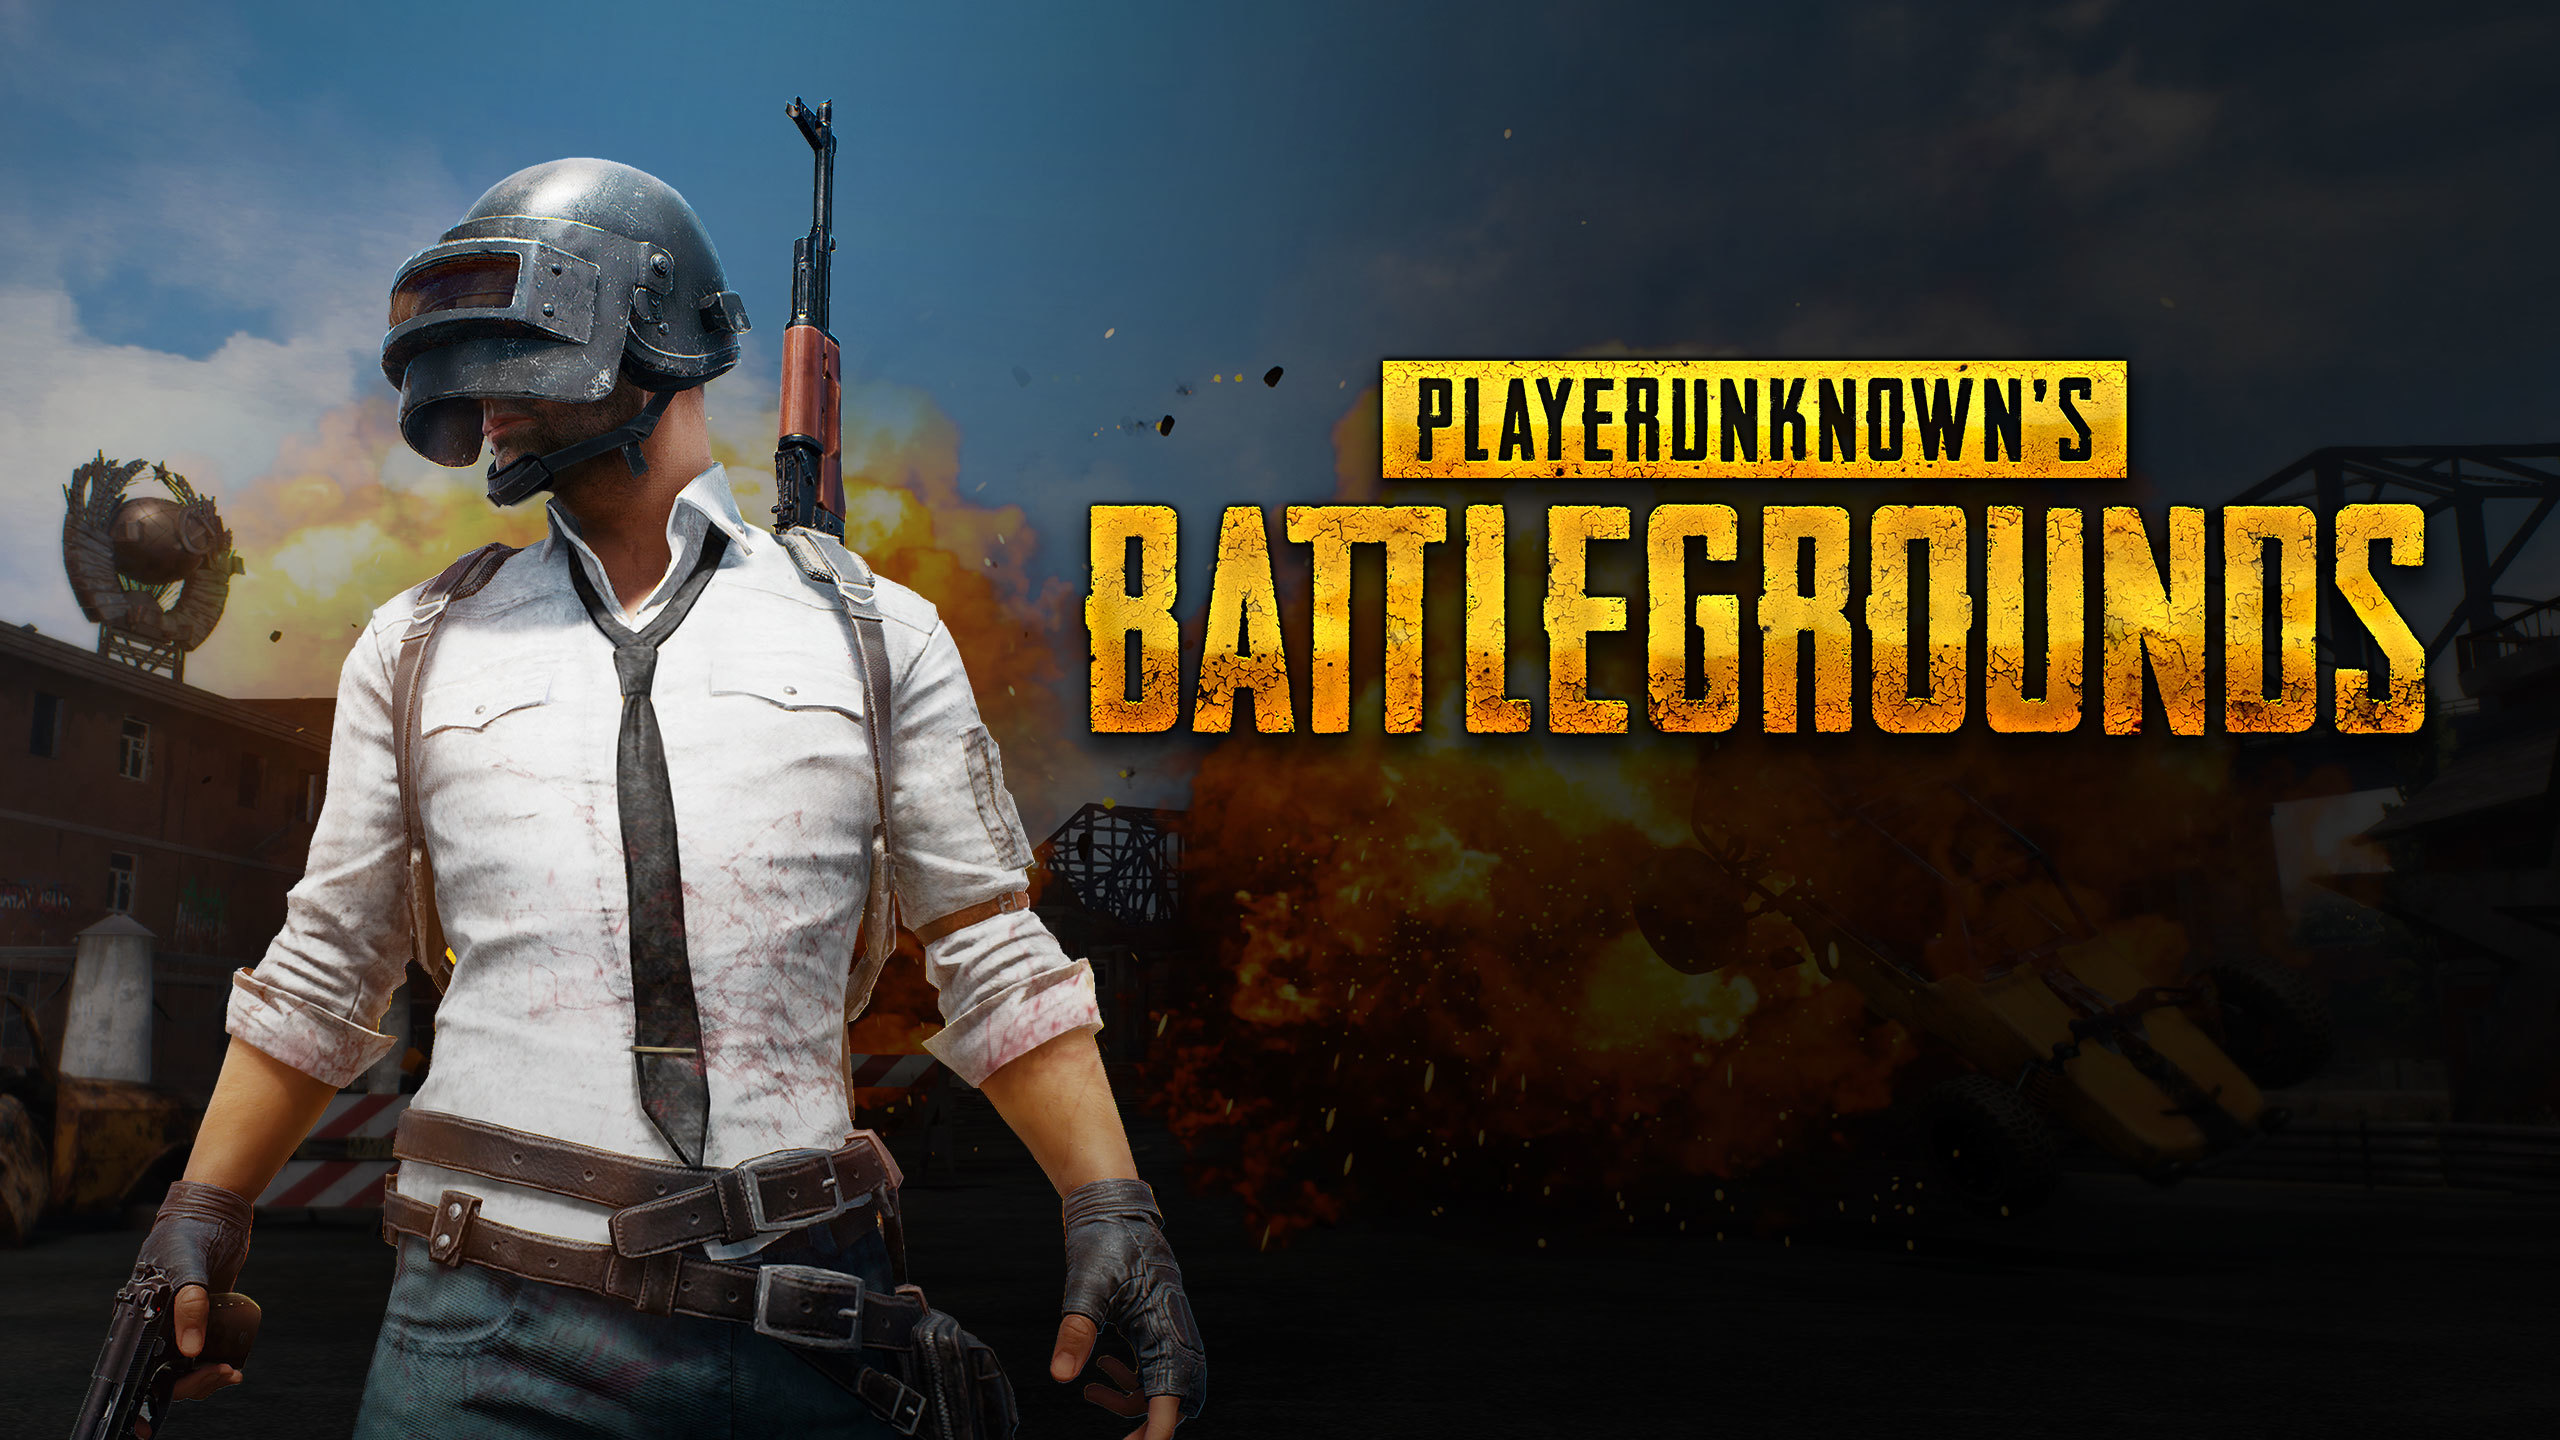 Requisitos de Playerunknown's Battlegrounds